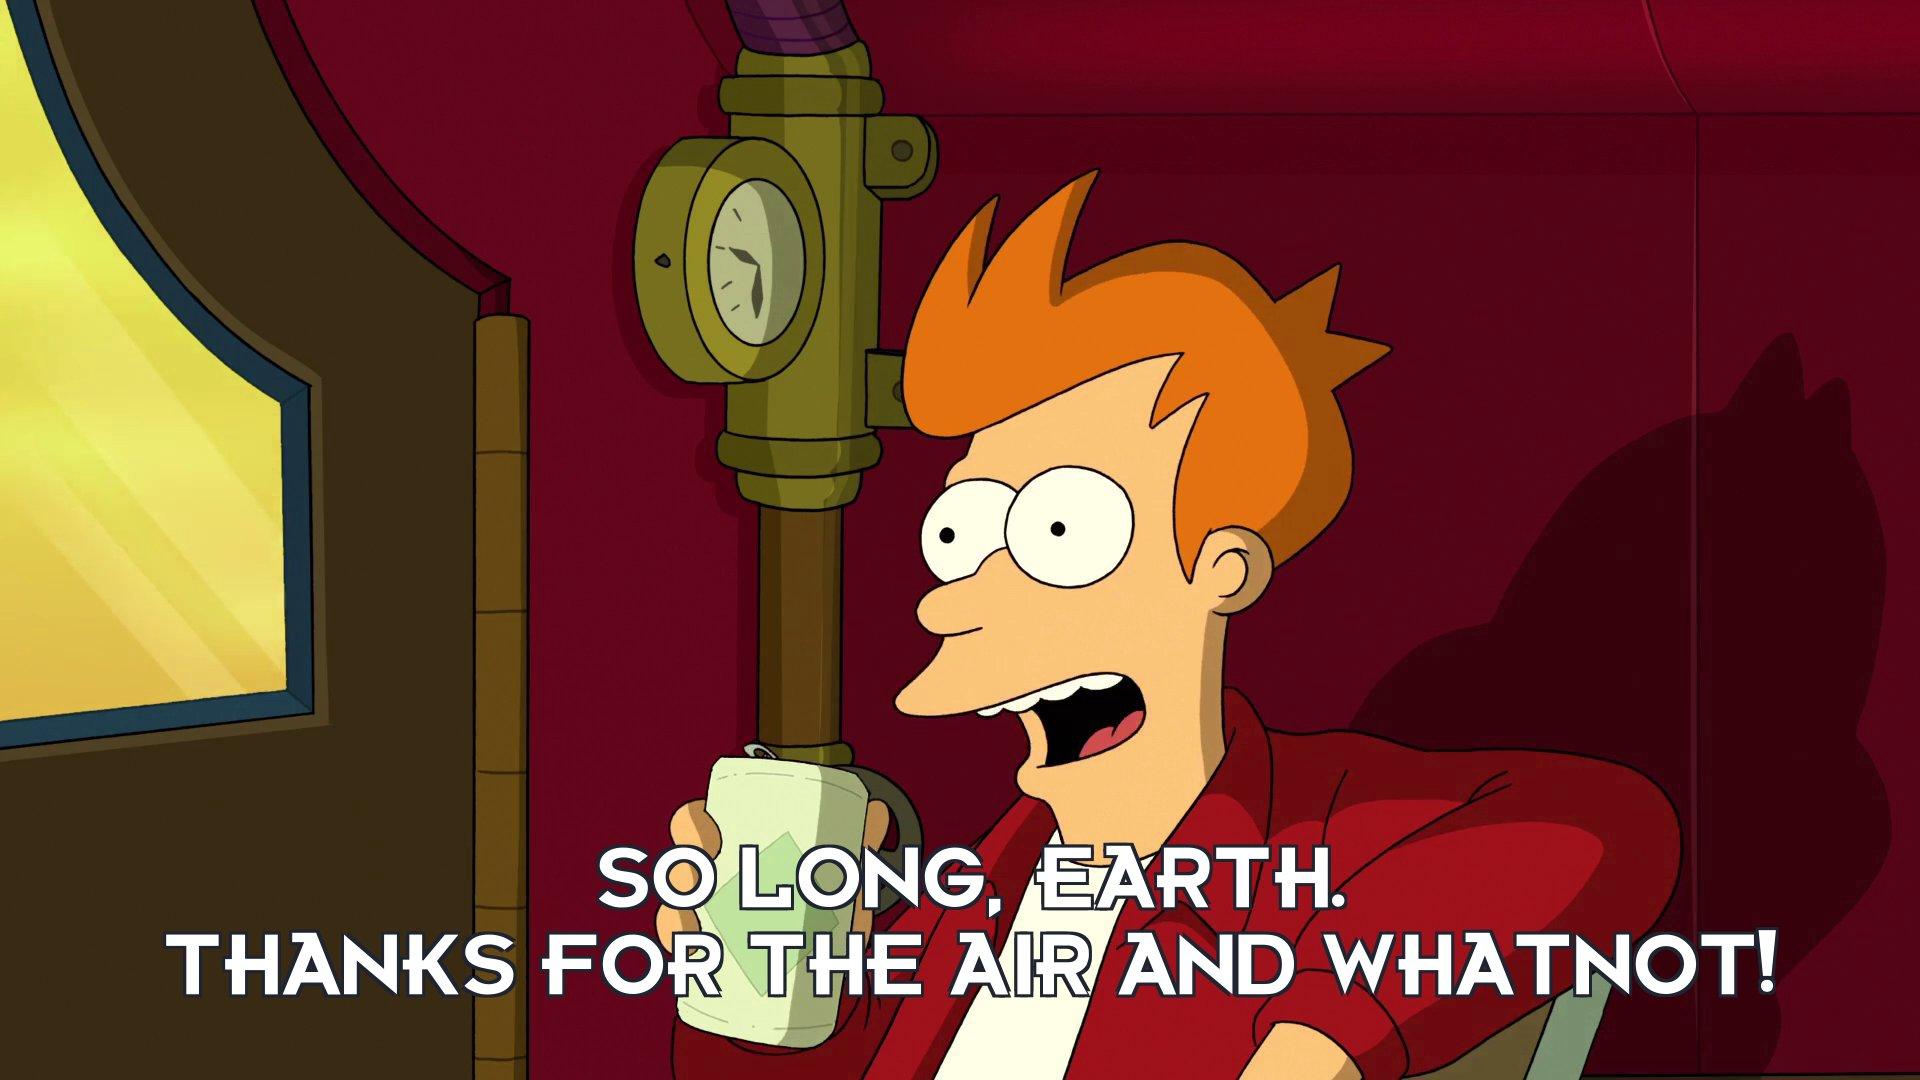 Philip J Fry: So long, Earth. Thanks for the air and whatnot!